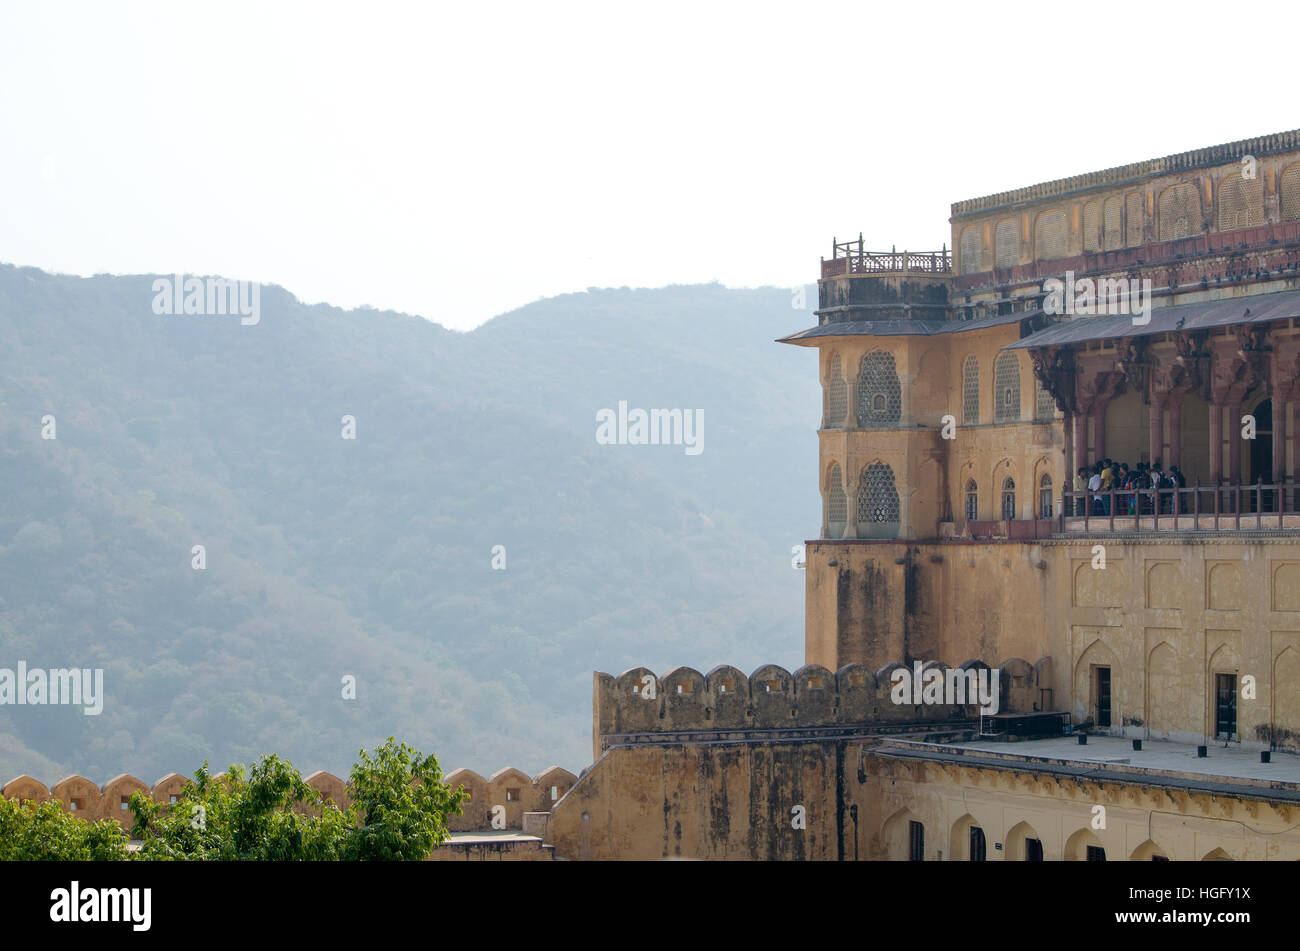 Istorical construction Amber's fort architectur, historical,a construction,amber,india,jaipur,architecture,building - Stock Image